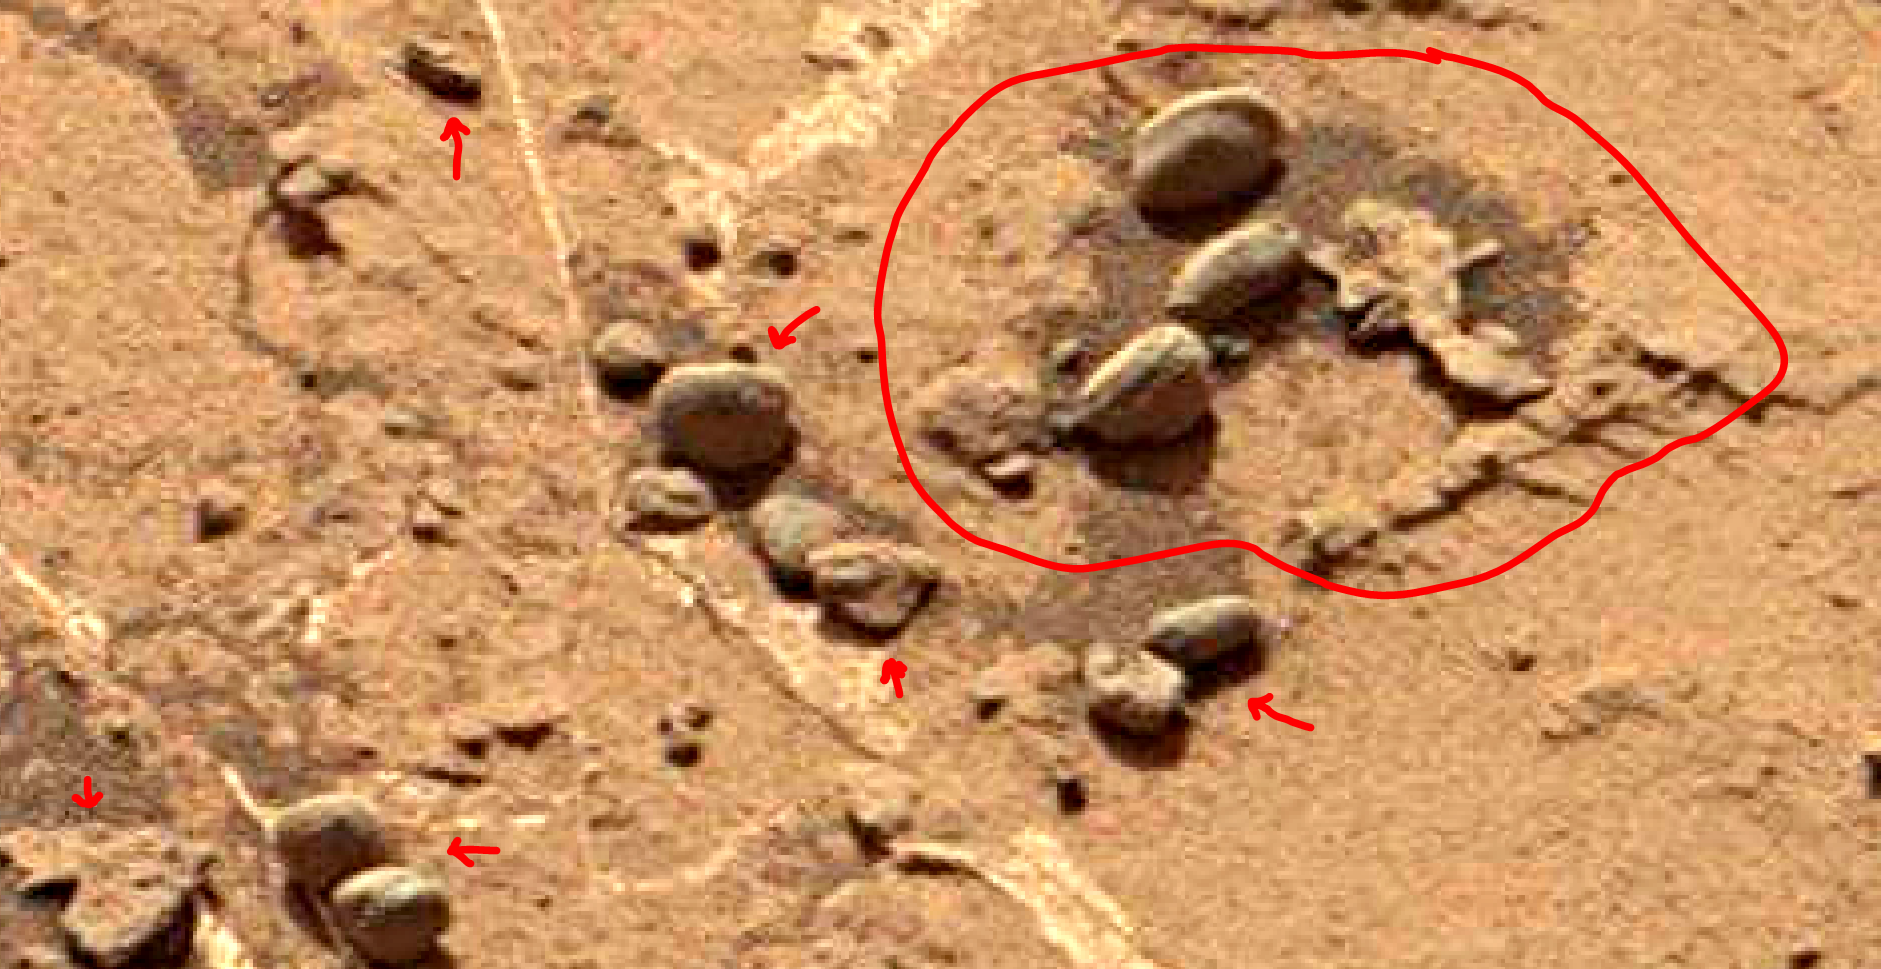 mars-sol-1456-anomaly-artifacts-6a-was-life-on-mars